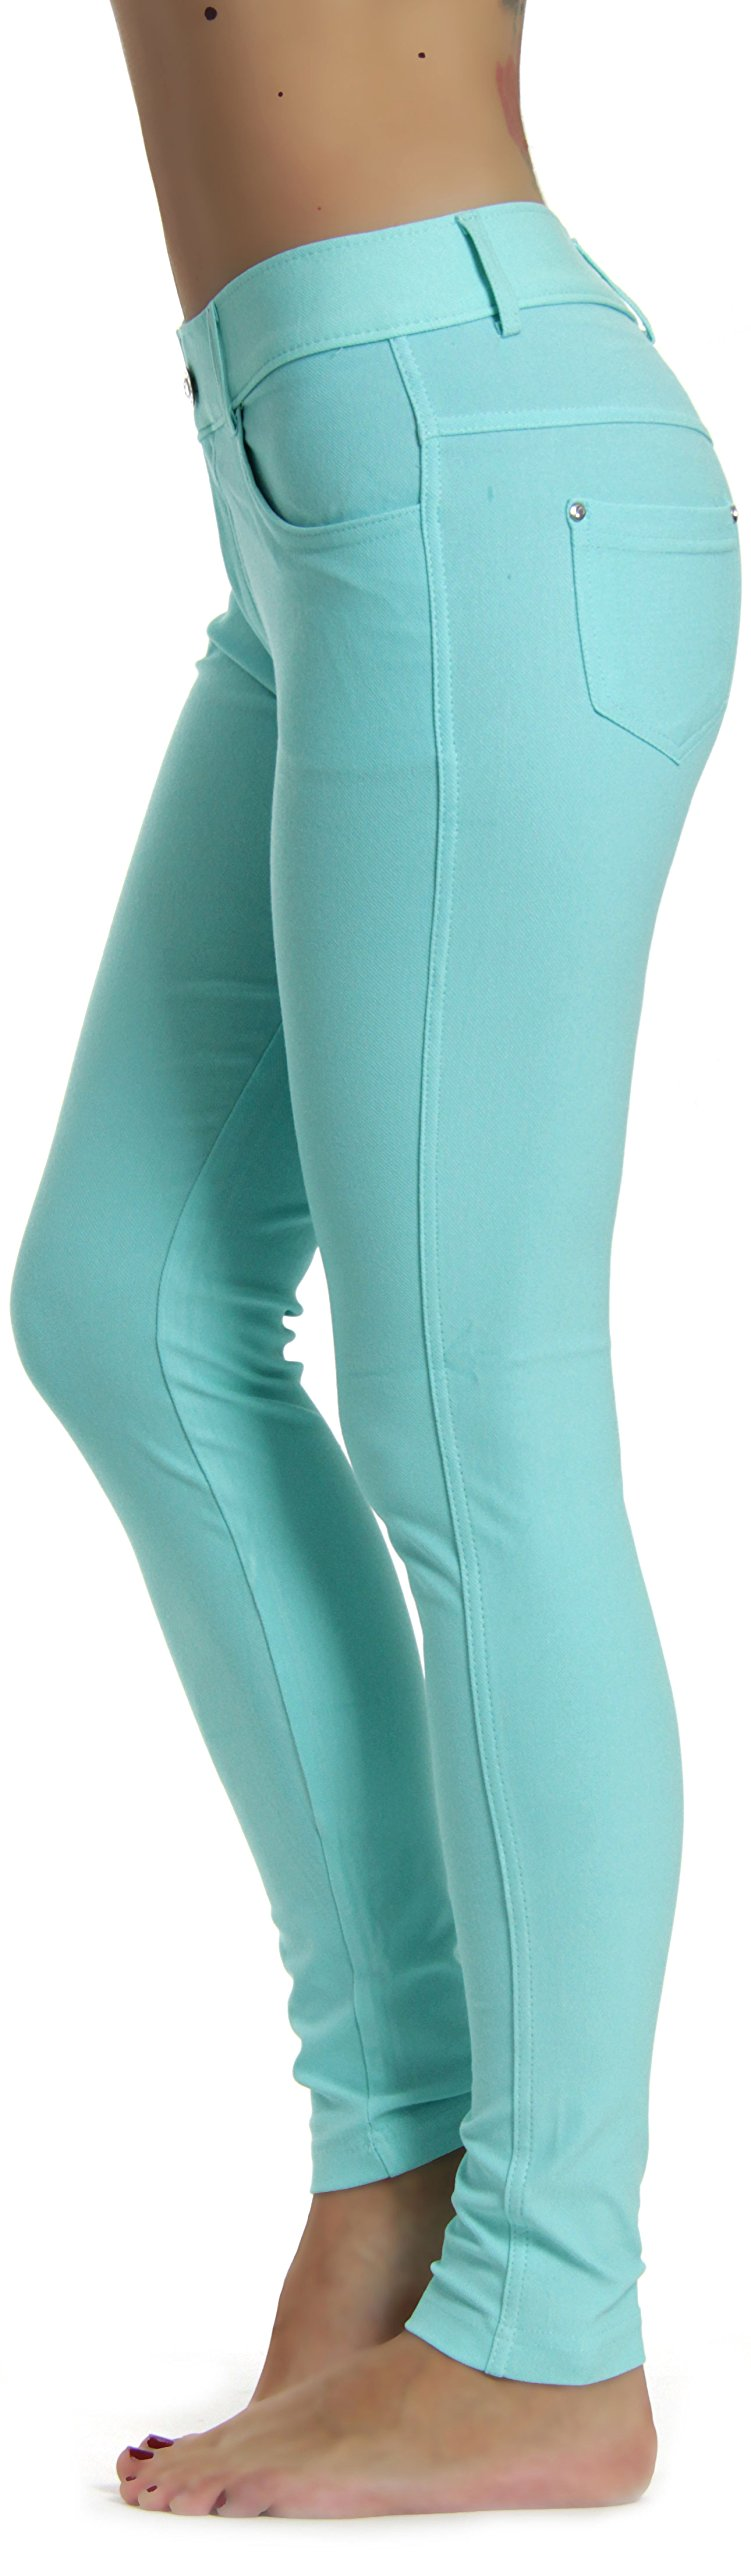 Prolific Health Jeggings Leggings Turquoise